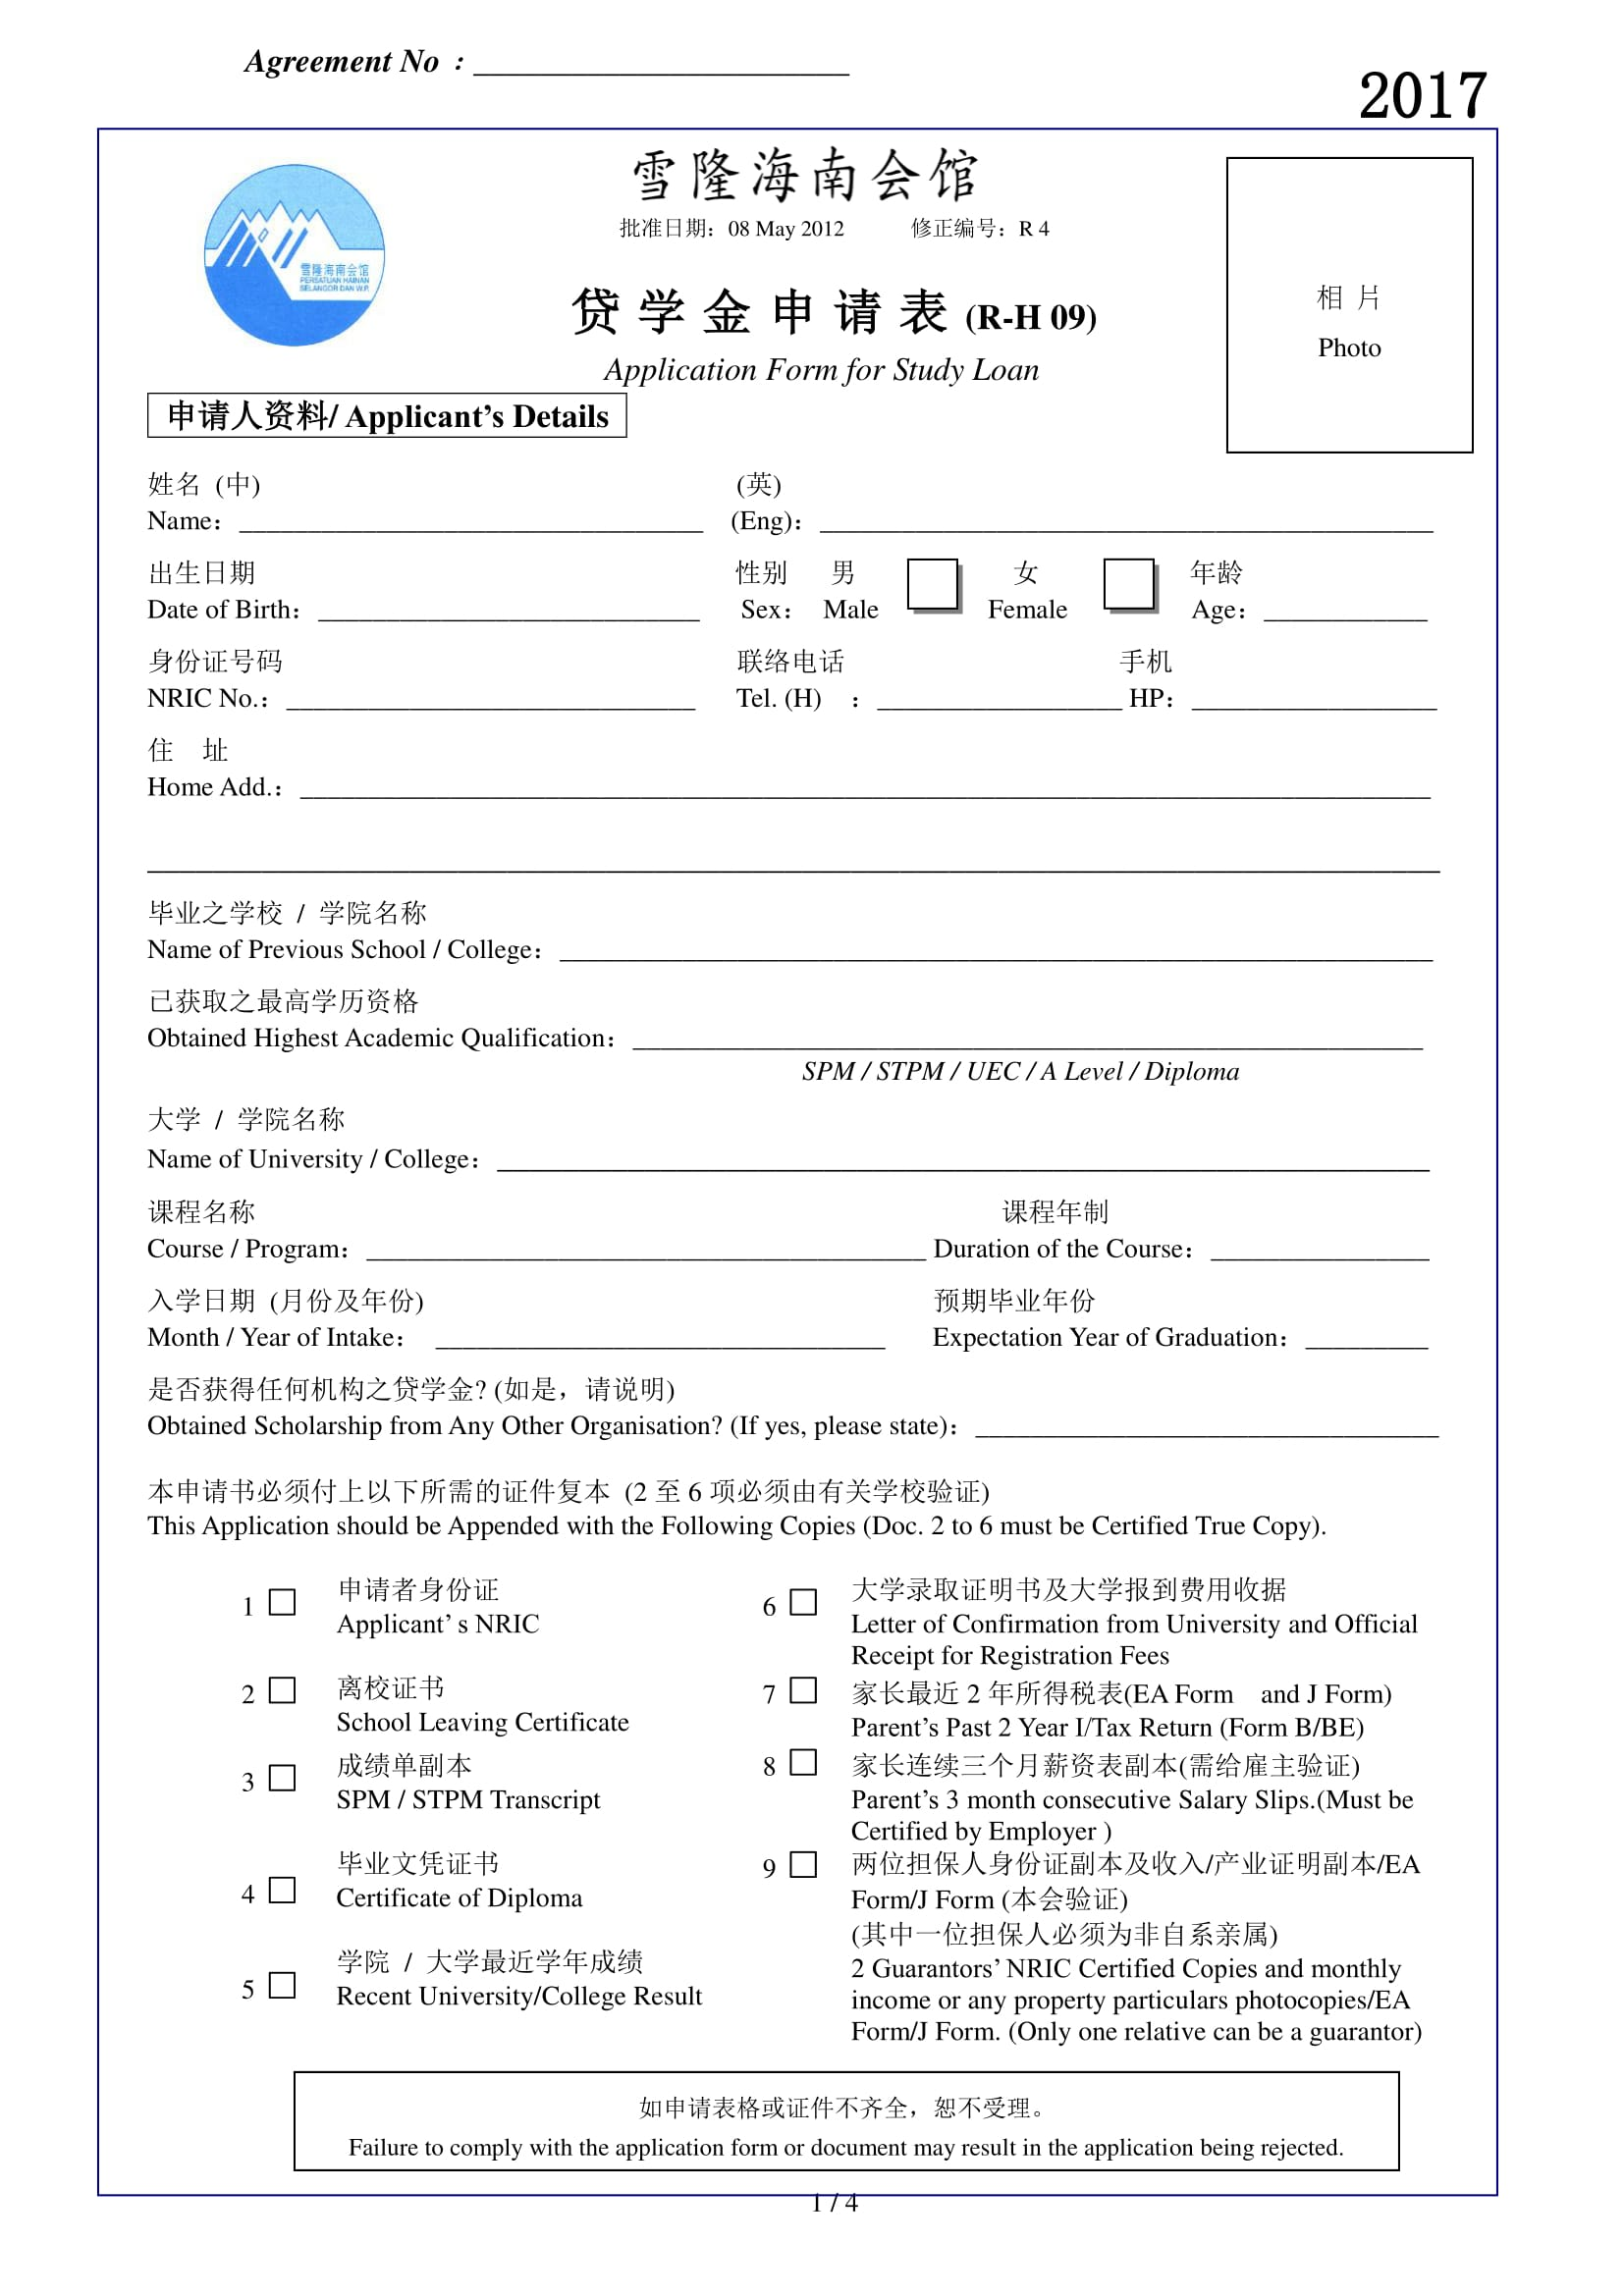 Birth Certificate Translation Template Out Of Darkness Peruvian - Japanese birth certificate translation template